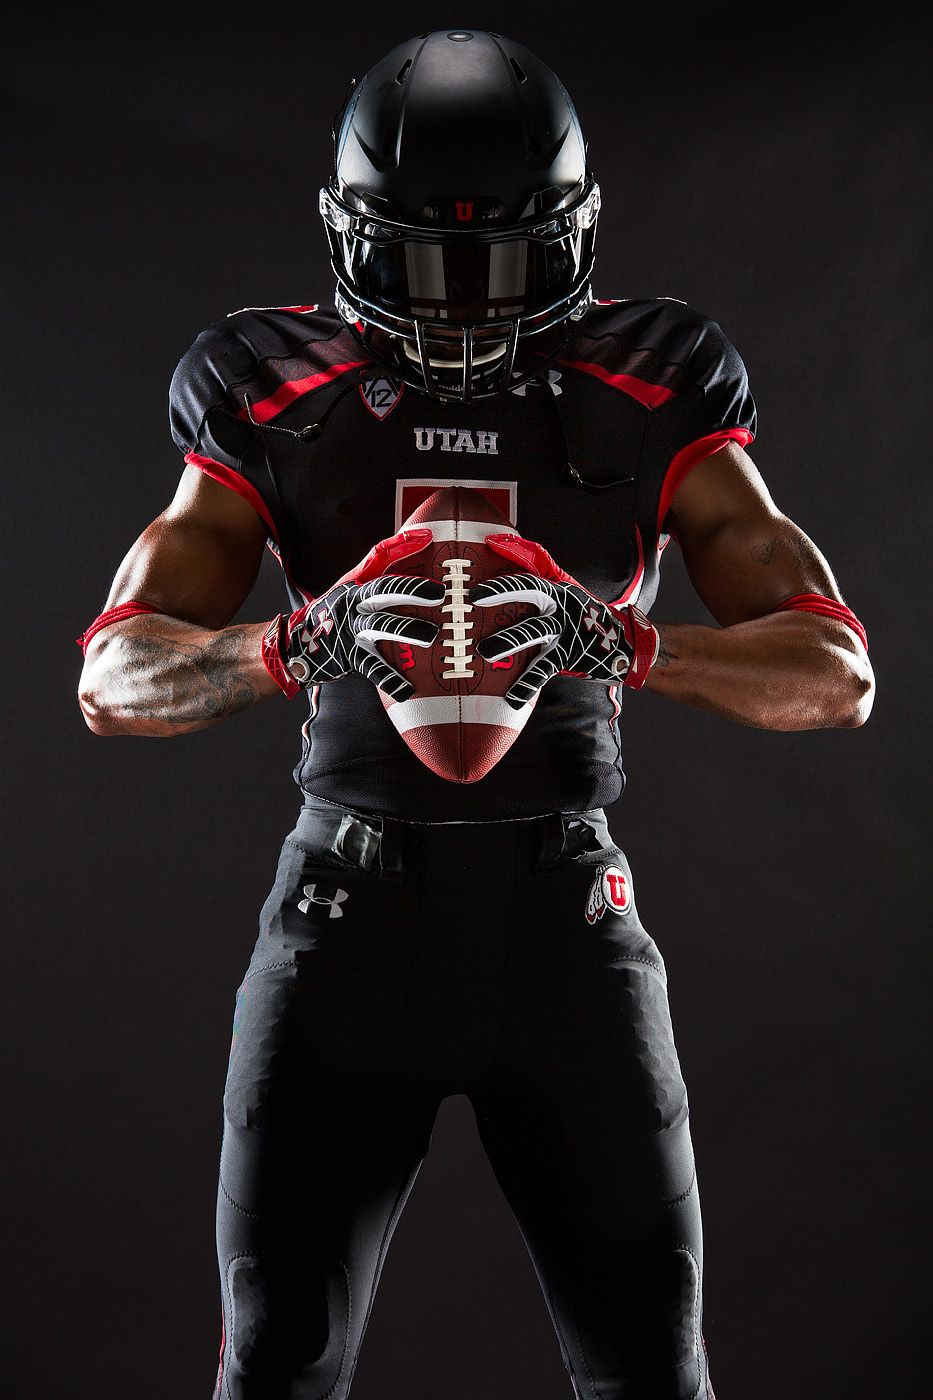 University of Utah Football | Hall of Fame Photography on Behance ...